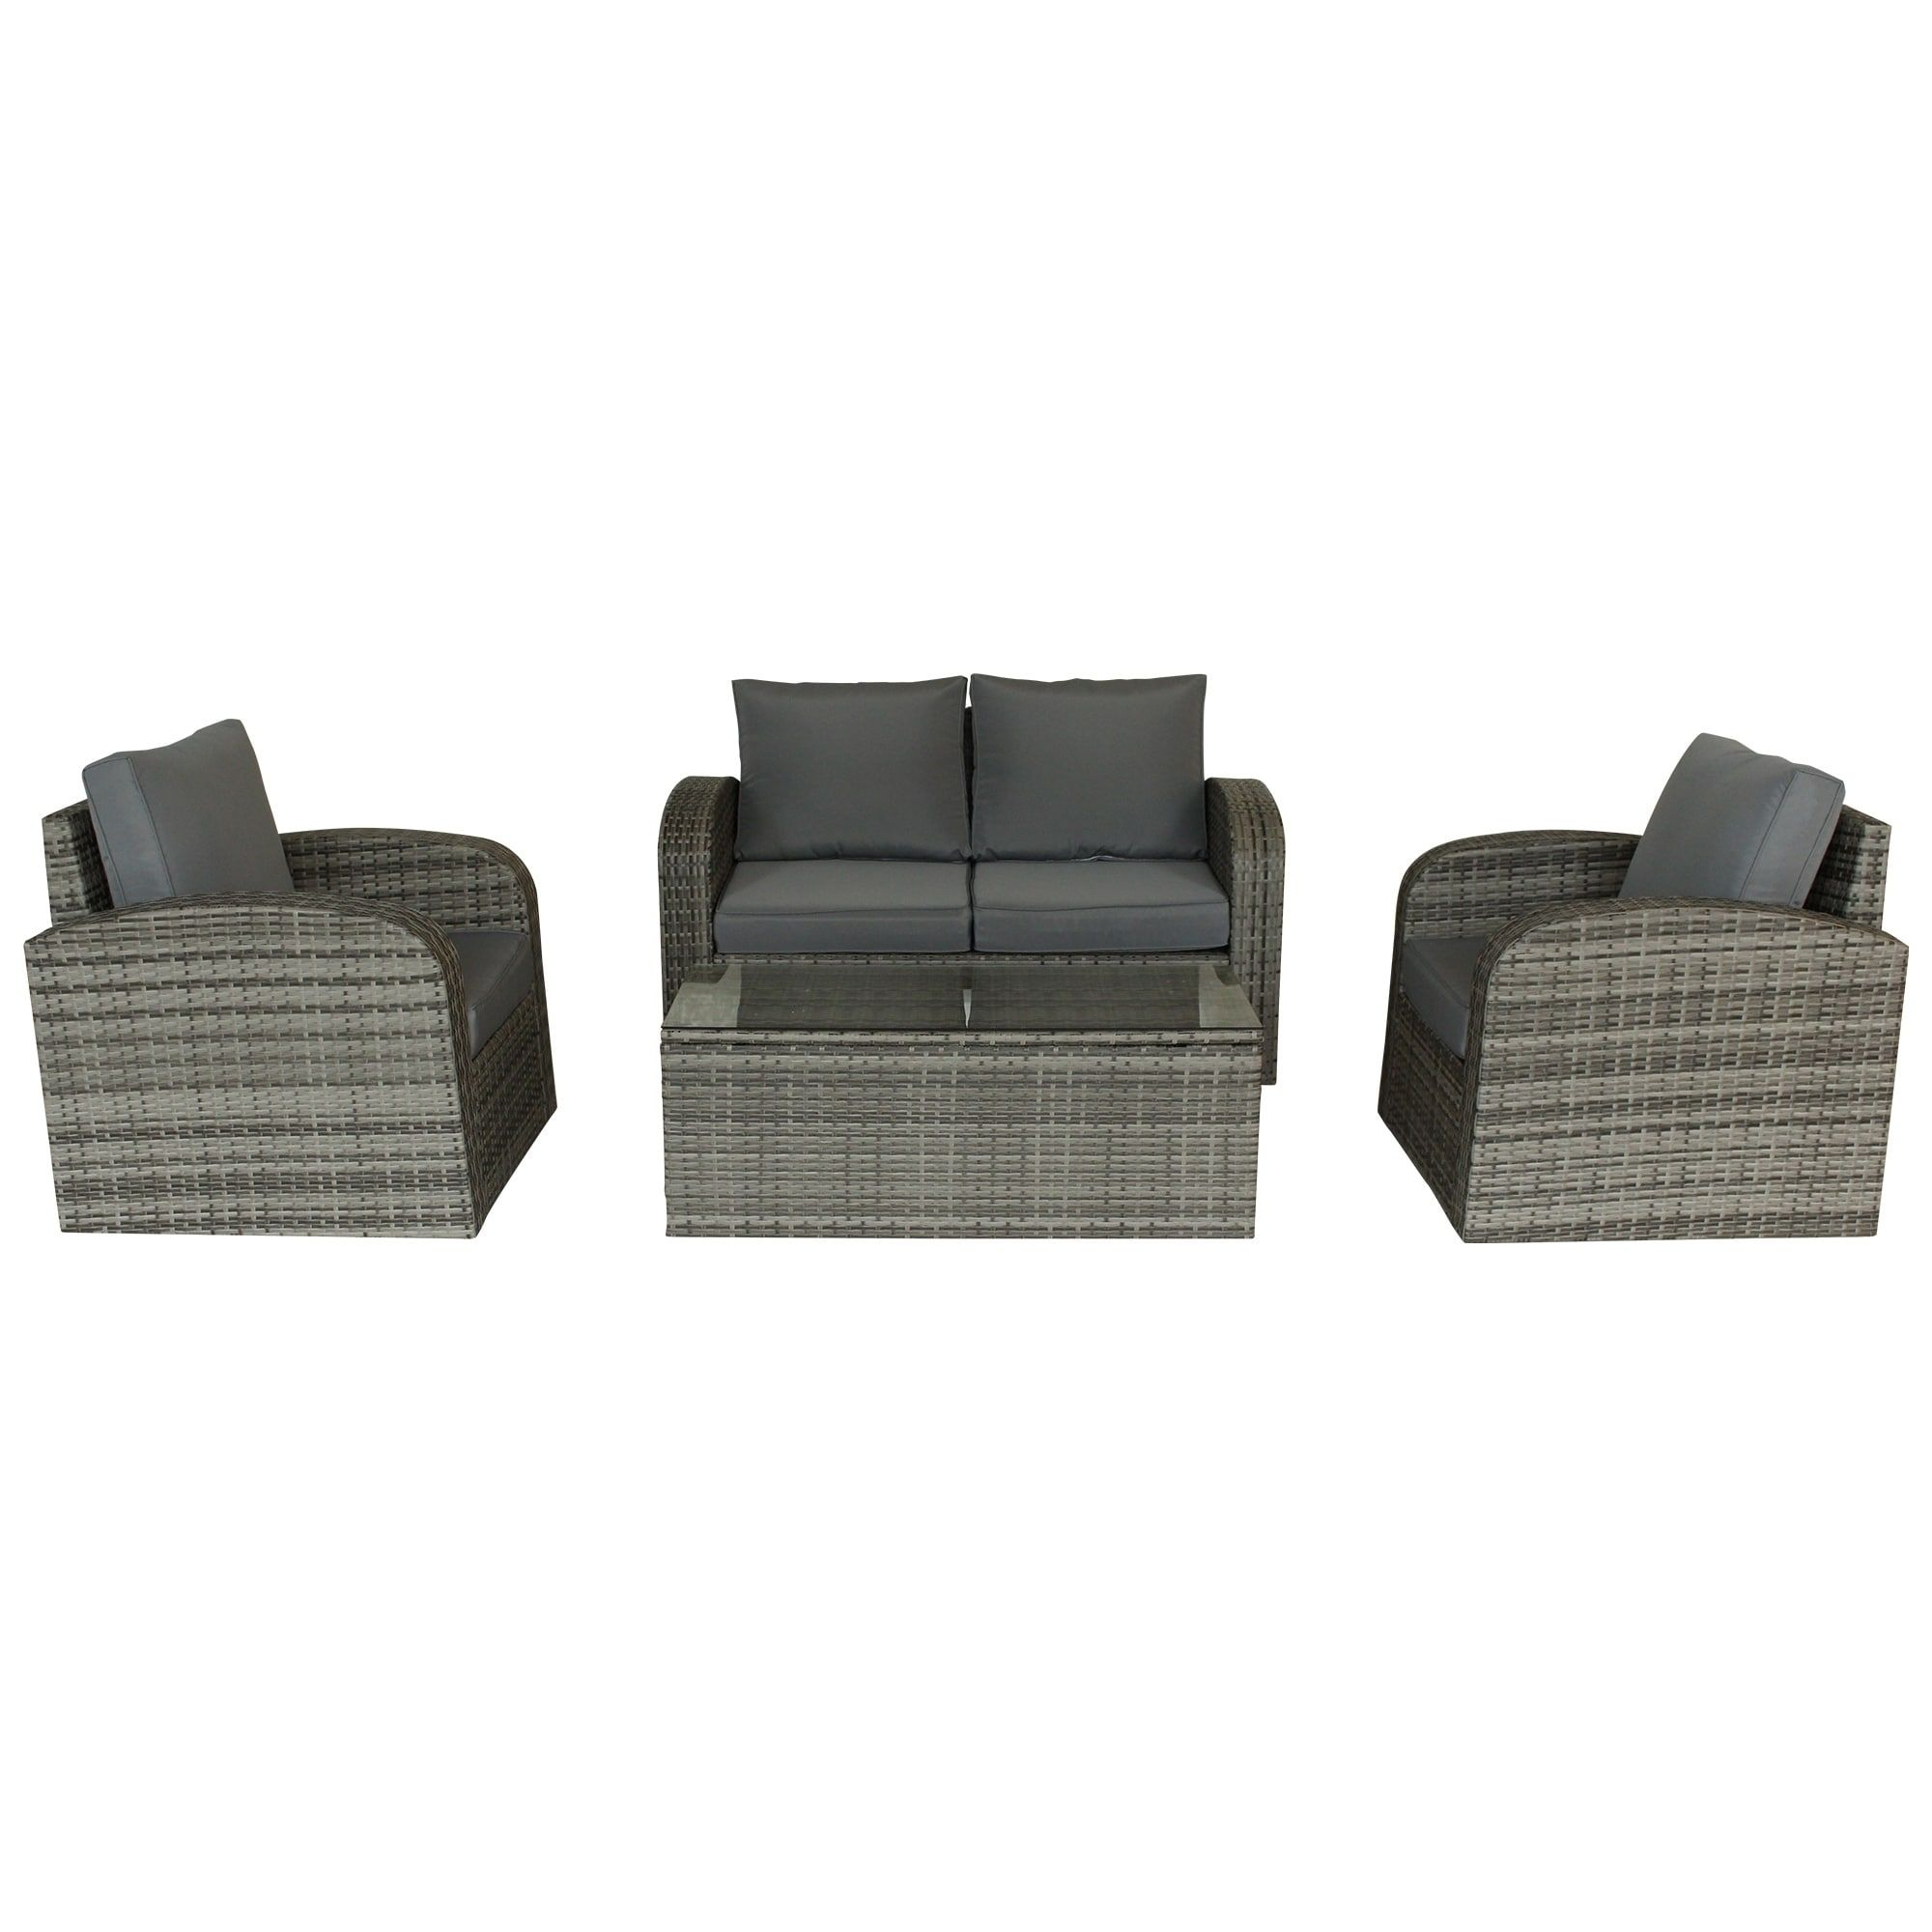 Piece Multy Gray Outdoor Lounge